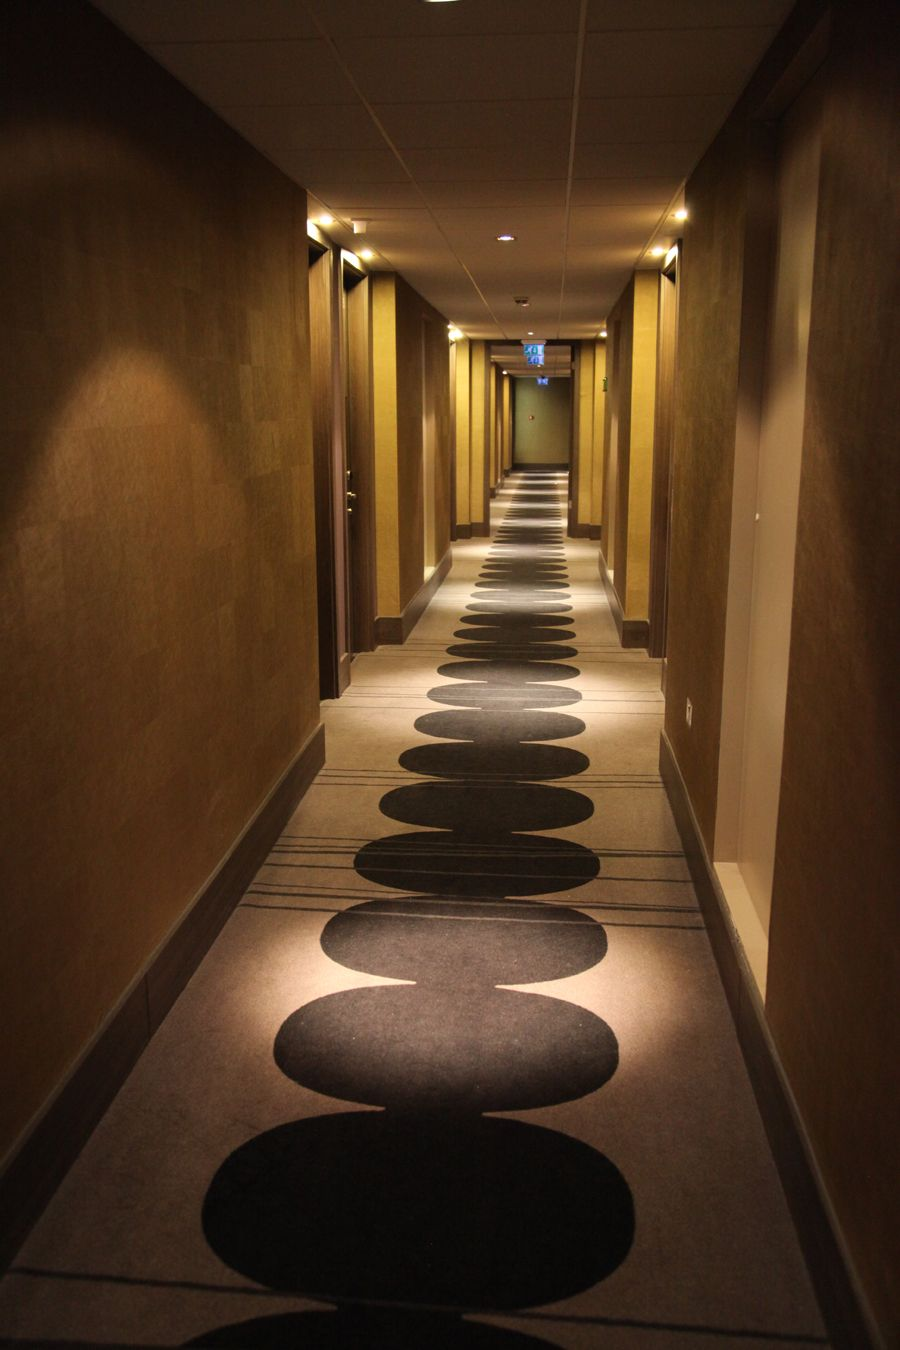 Hotel Room Lights: Hotel Corridors - Google Search